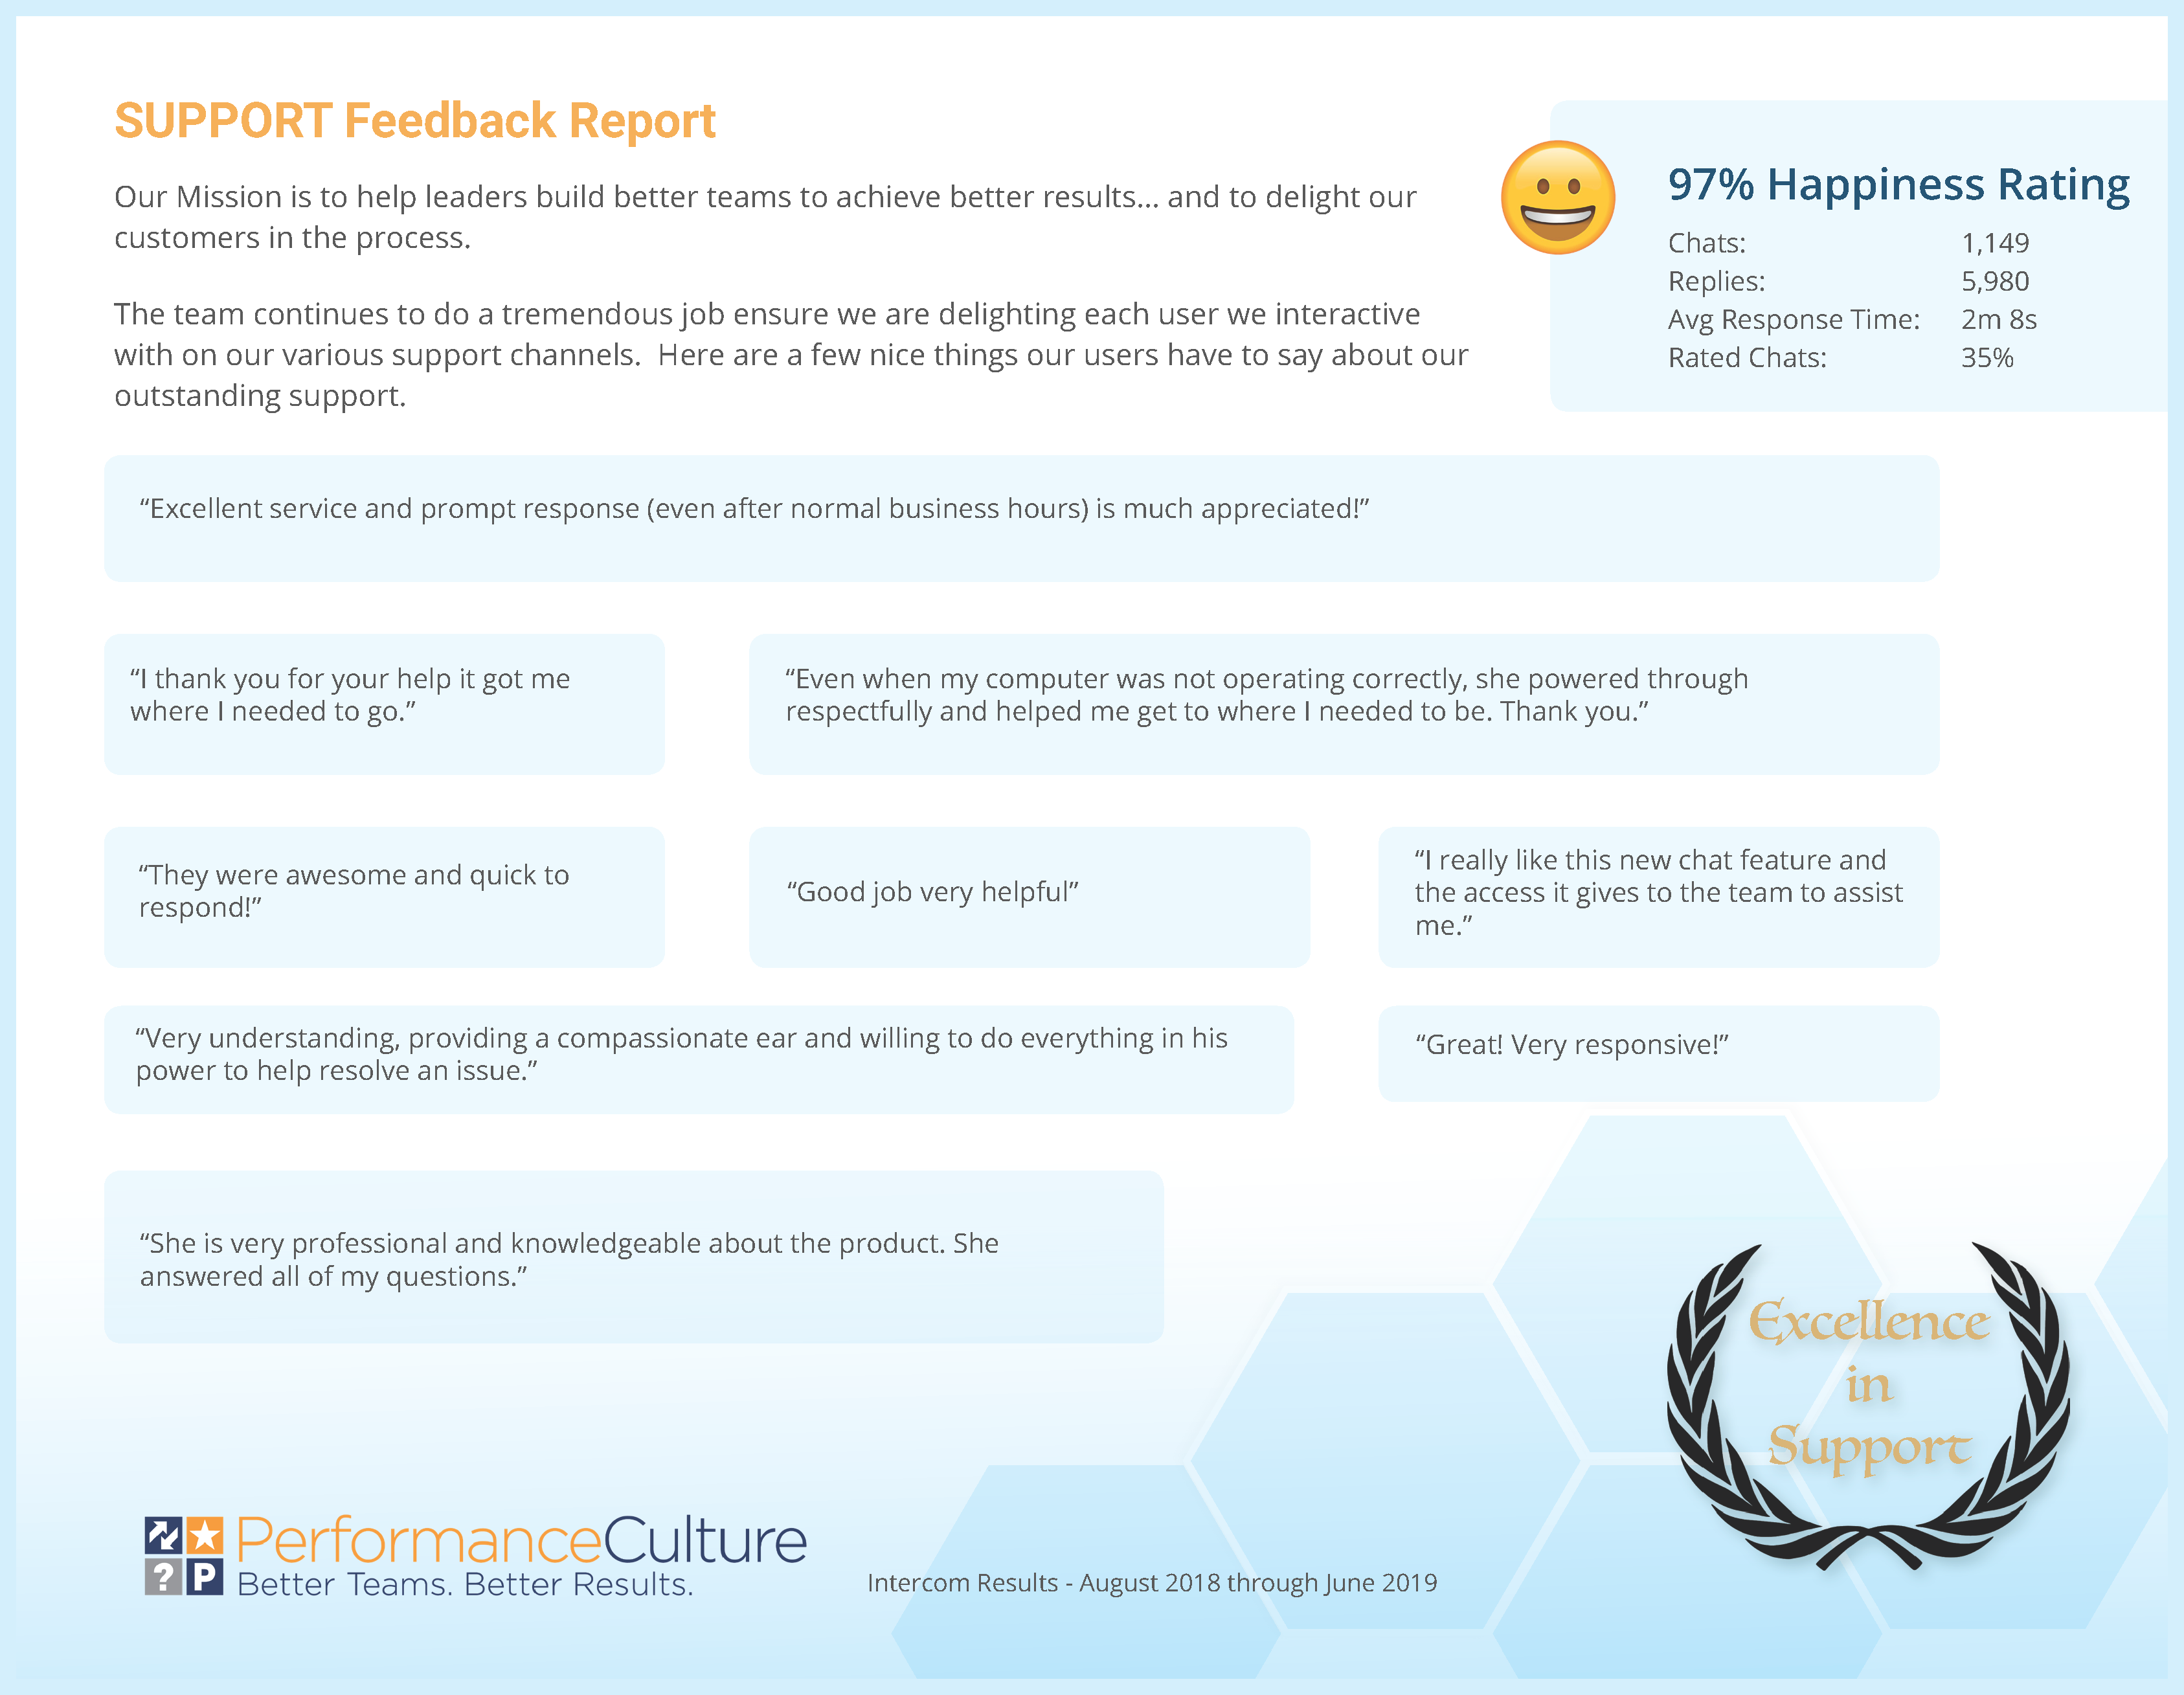 Support Feedback Report Thumb